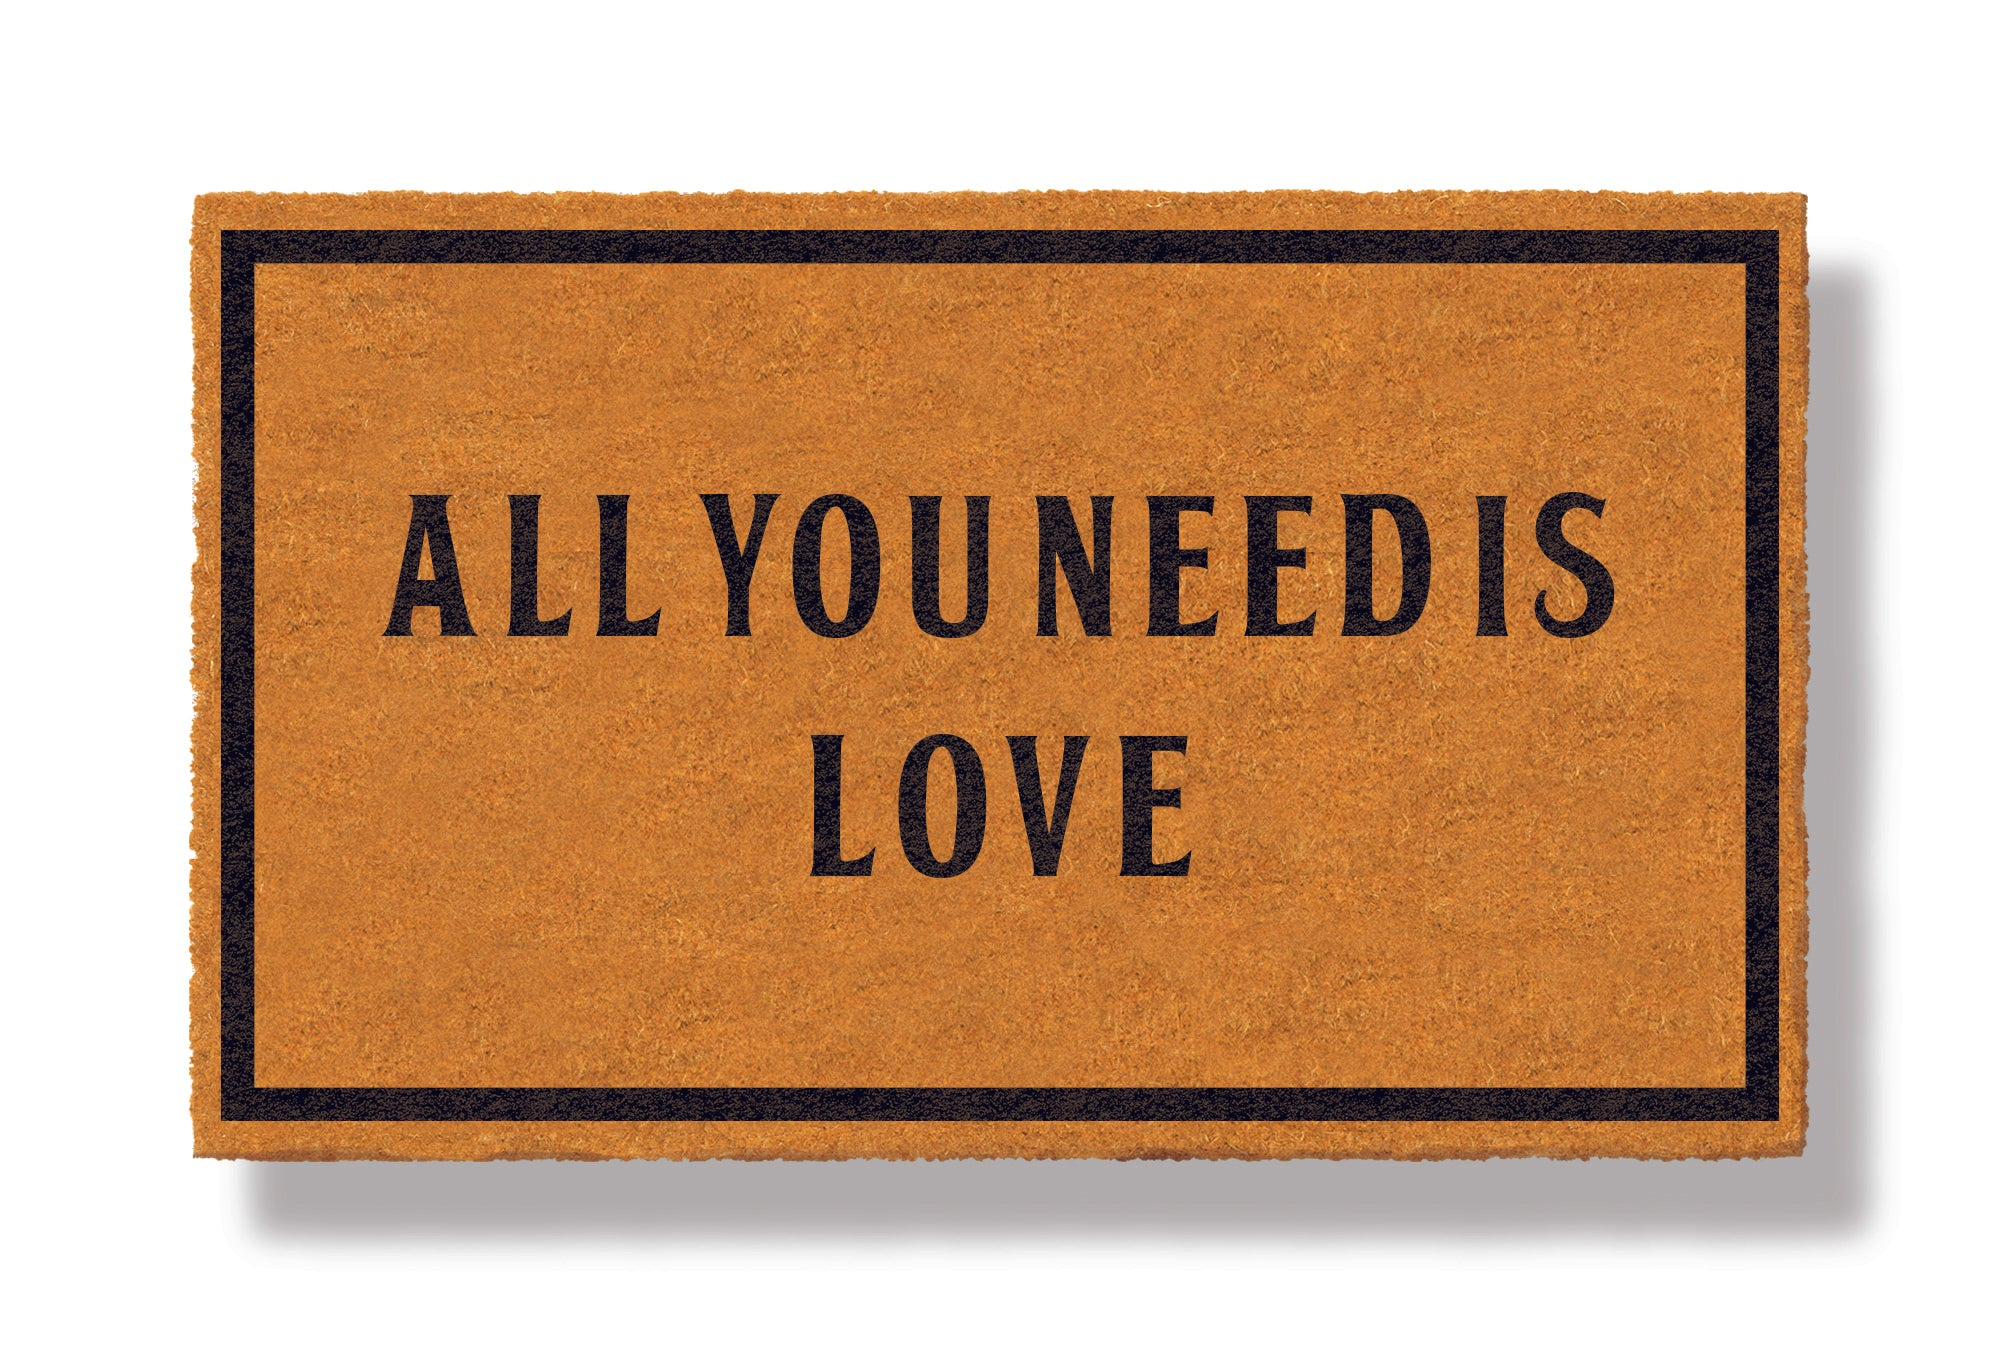 This coir welcome mat is a funny doormat on a white background with a drop shadow. The brown doormat has a black border and has black centered text that reads All You Need Is Love.